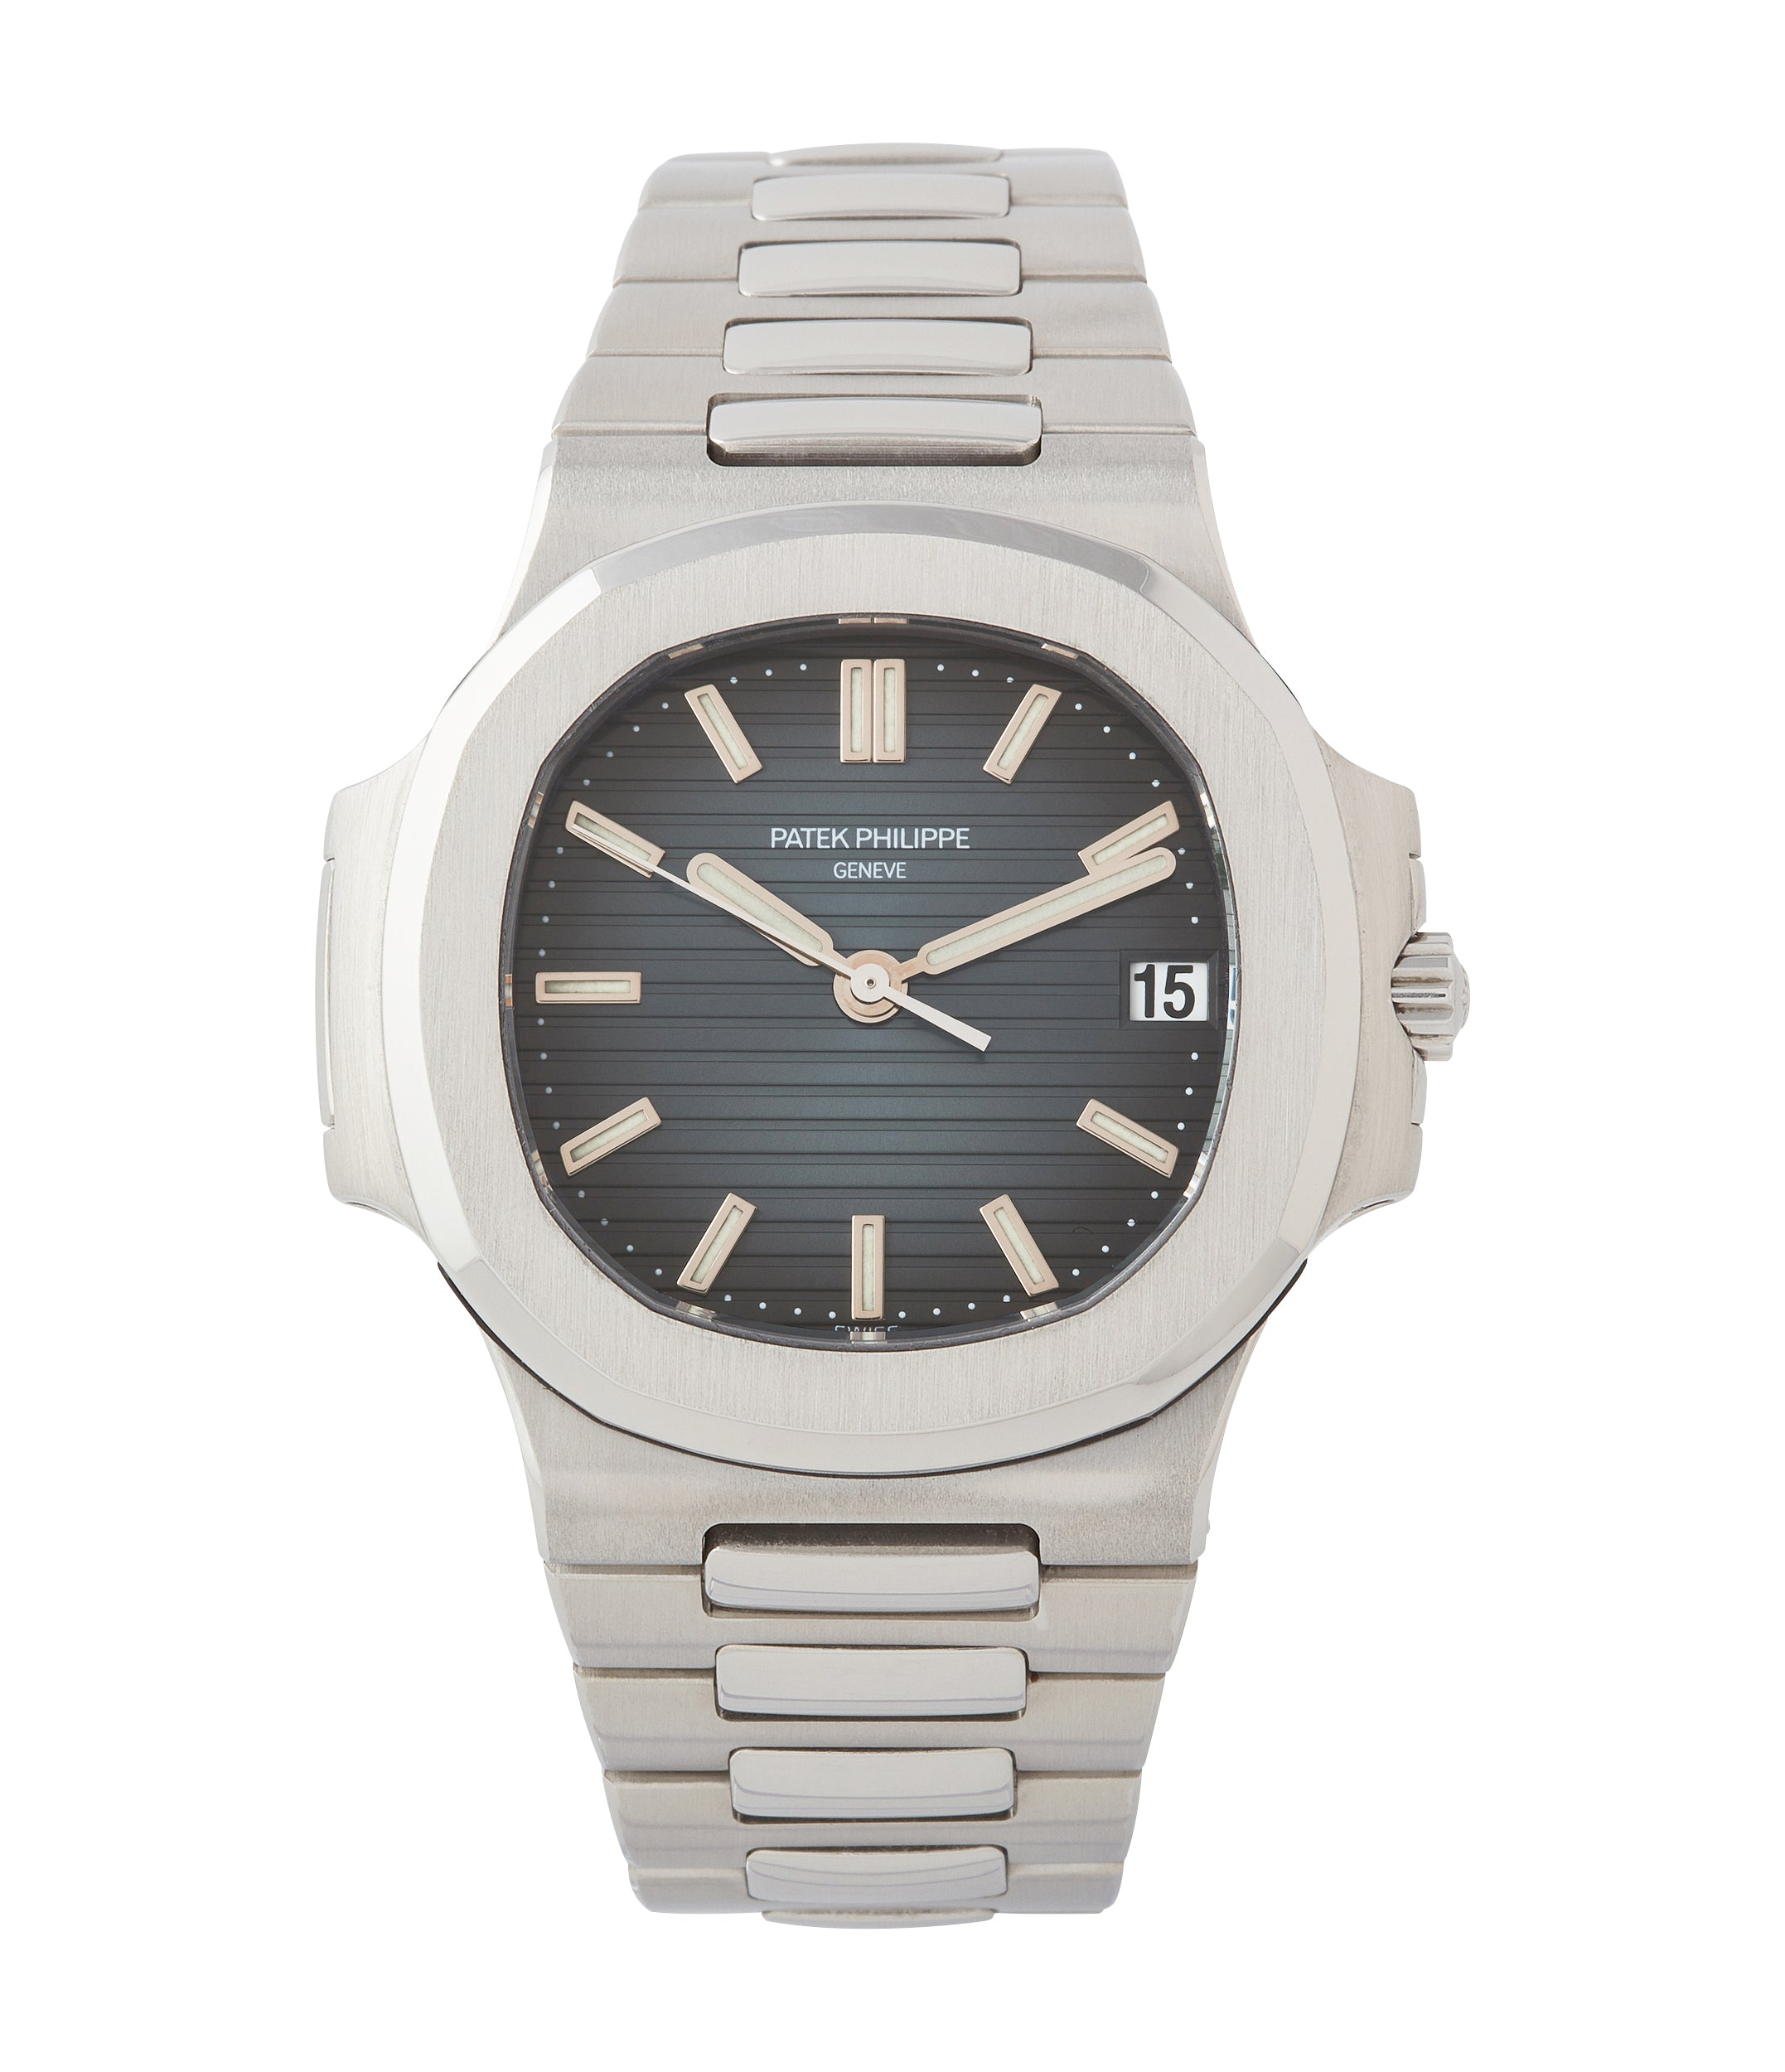 buy rare Patek Philippe Nautilus 5800/1A-001 steel sport pre-owned watch for sale online at A Collected Man London UK specialist of rare watches